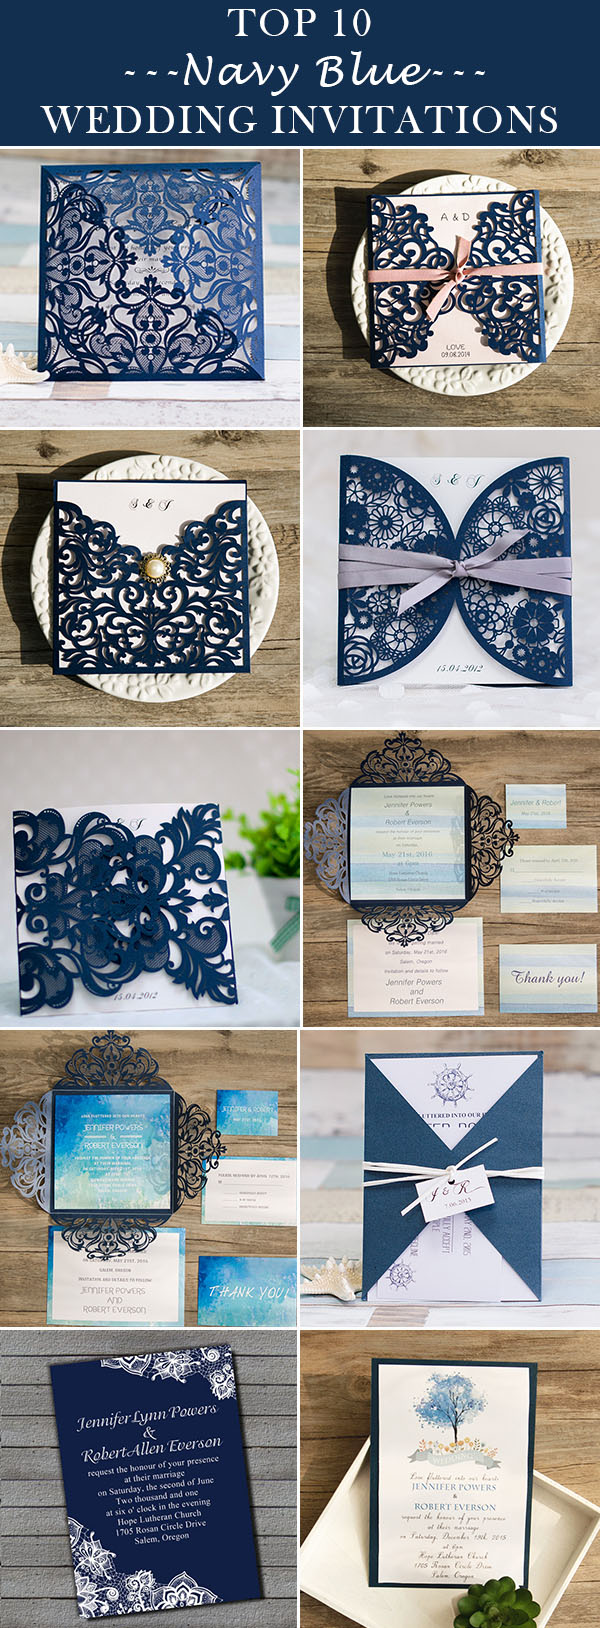 top 10 navy blue wedding invitations for 2016 trends